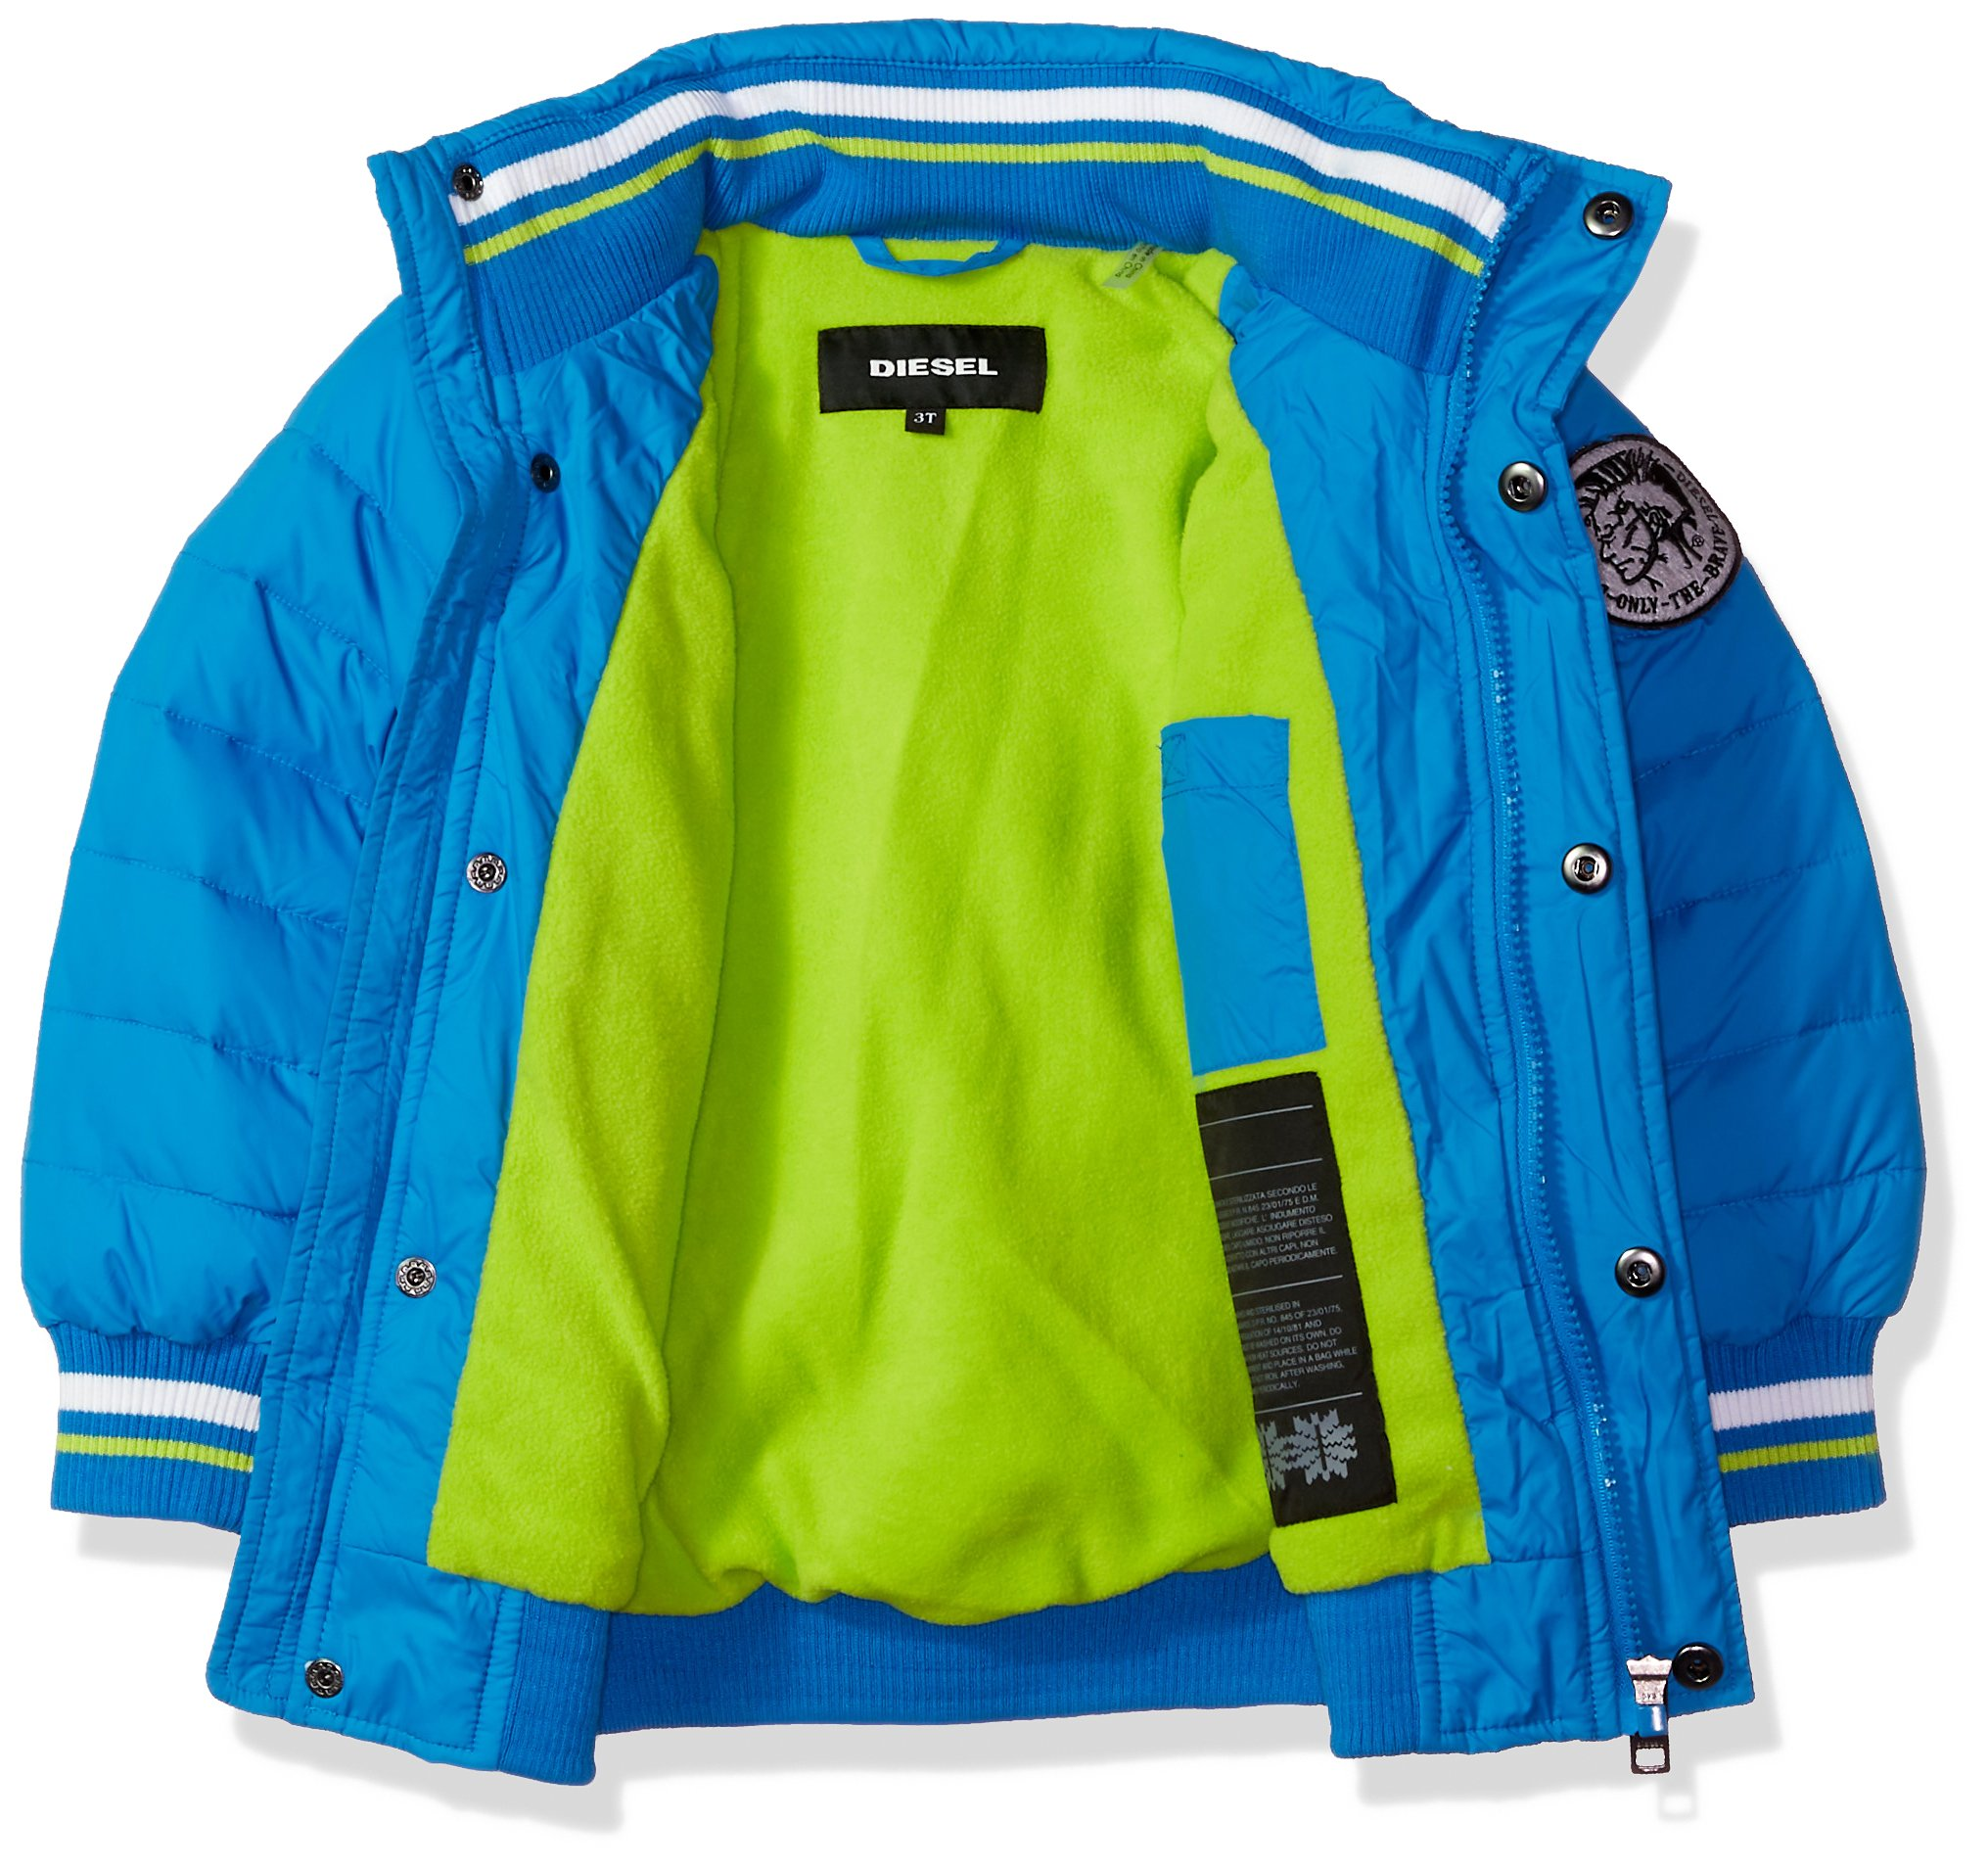 Diesel Toddler Boys' Outerwear Jacket (More Styles Available), Bubble/Blue, 4T by Diesel (Image #2)